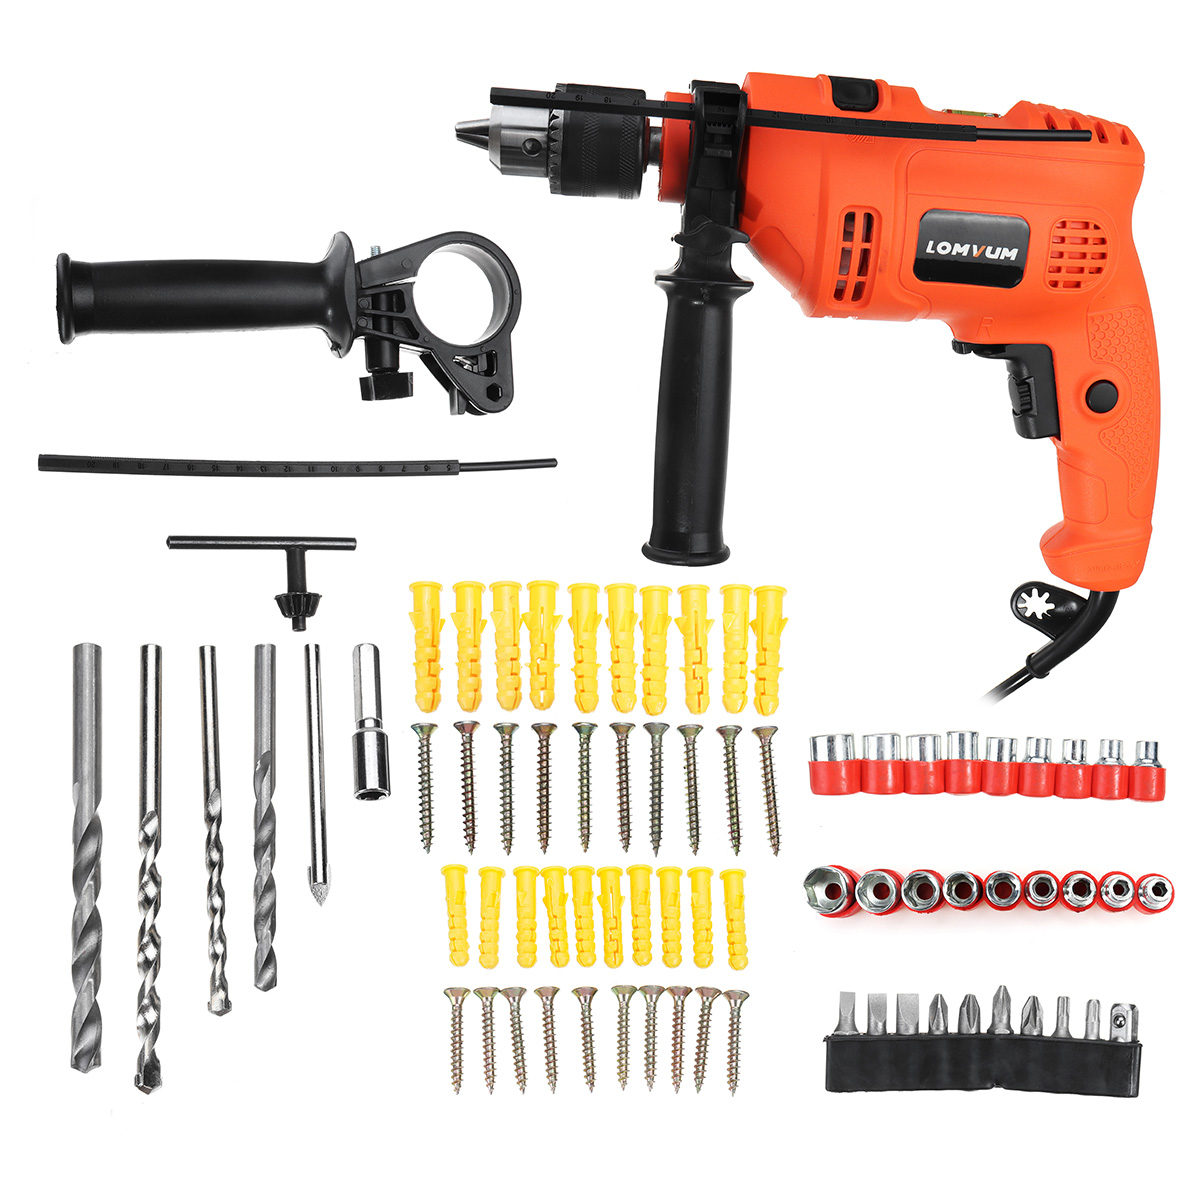 LOMVUM 220V Multi-function 600W Impact Drill Electric Screwdriver Angle Grinder Power Tools Kit